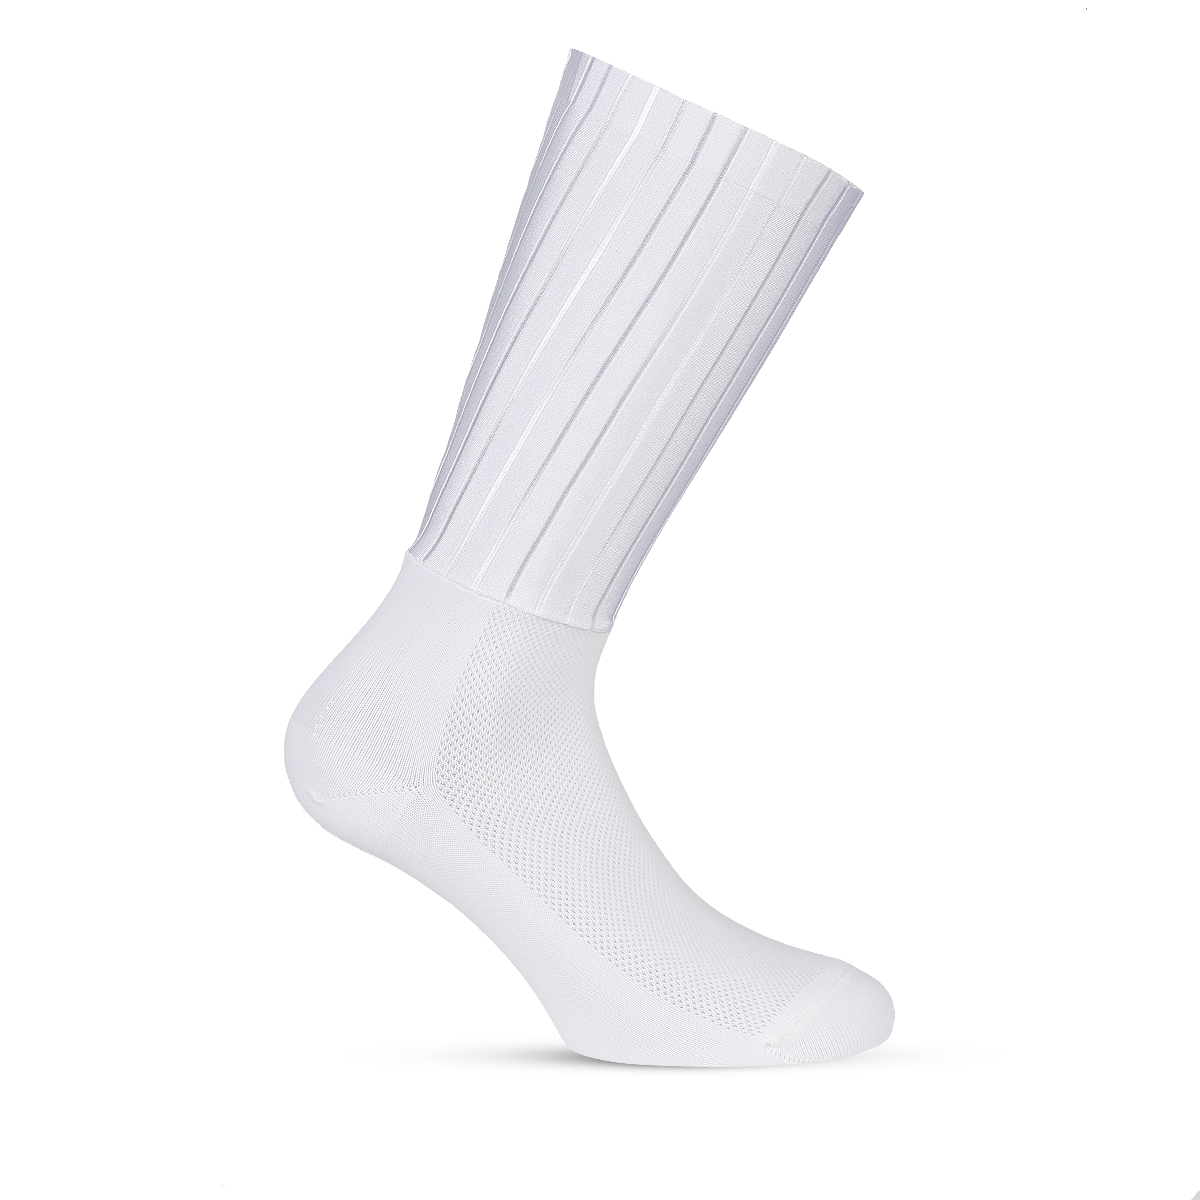 White Aero cycling Socks cycling swatt club solowattaggio watts